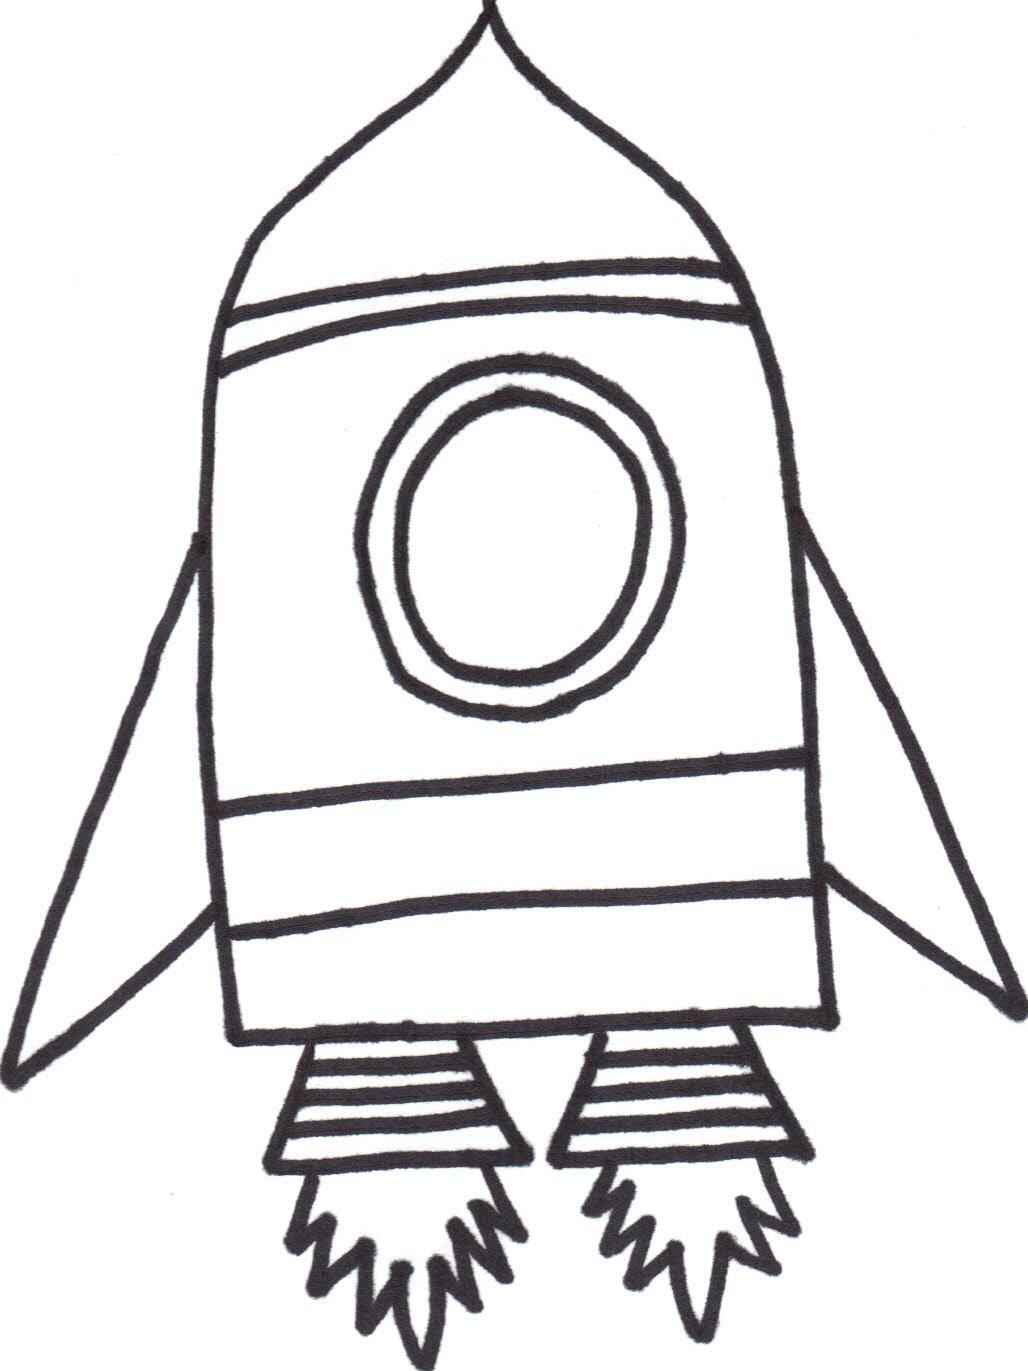 An Outline Of A Rocket